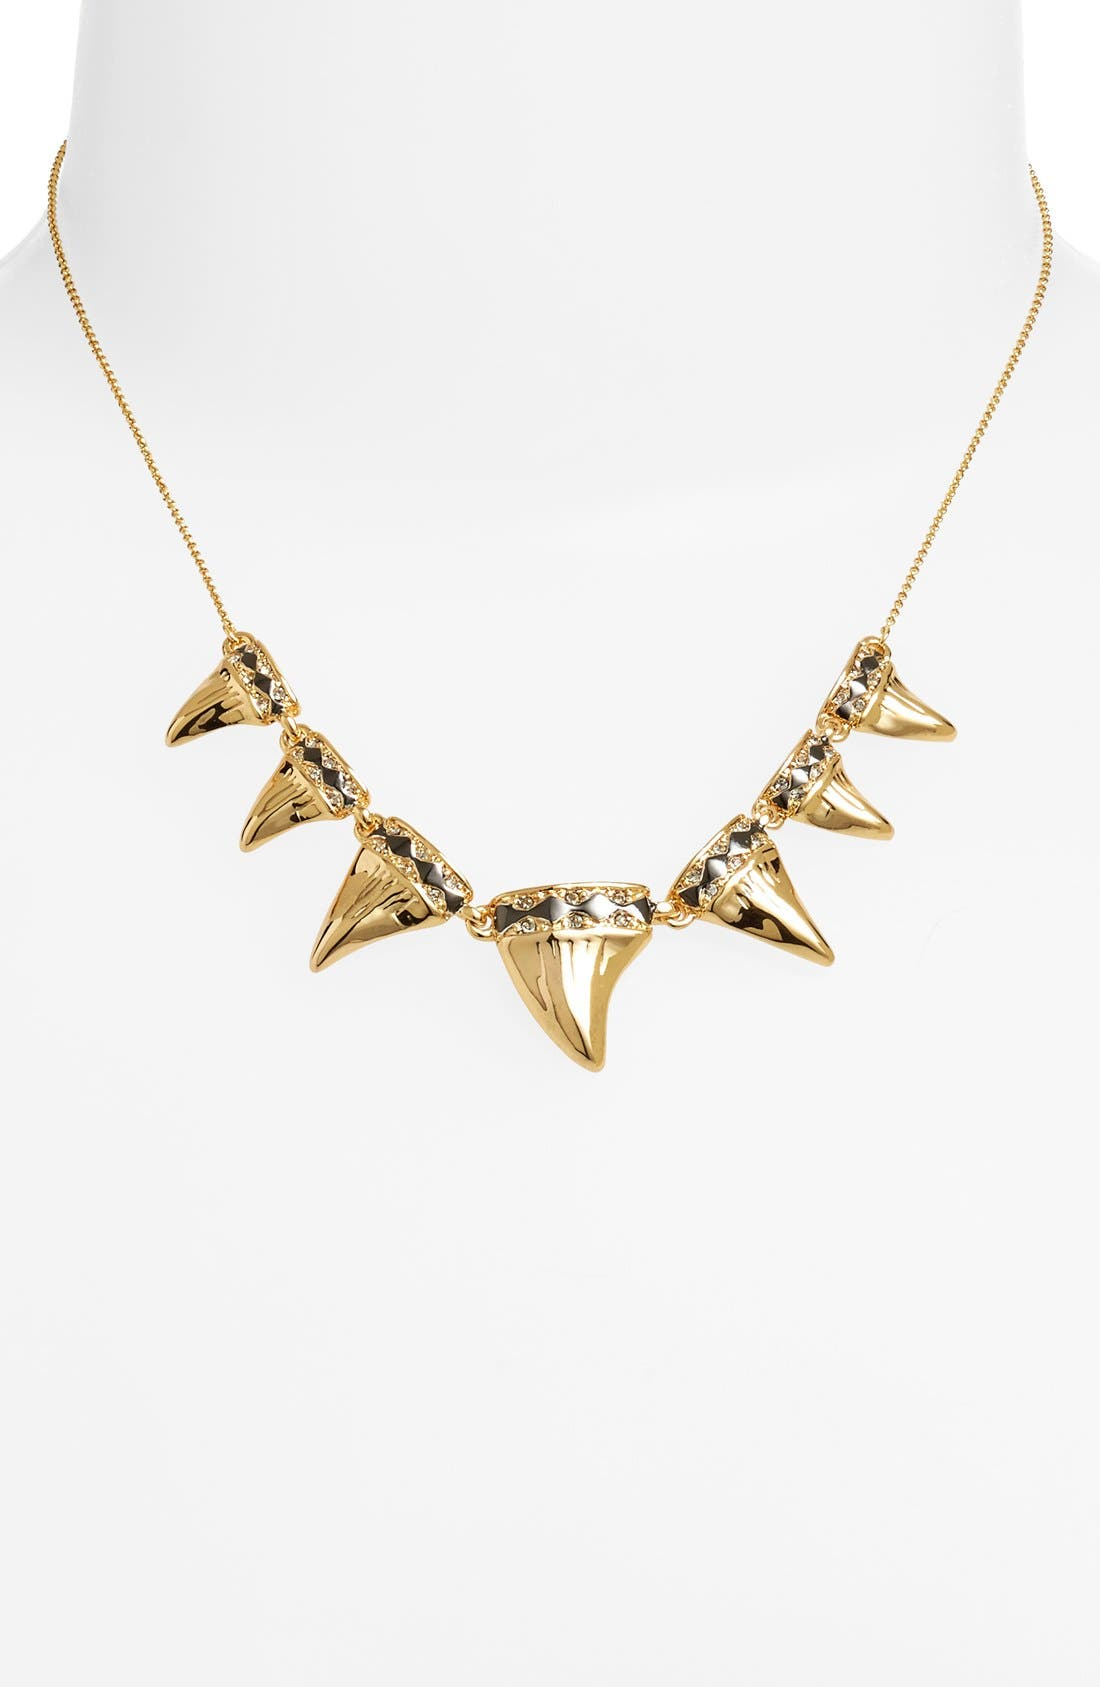 Main Image - House of Harlow 1960 'Shark Tooth' Frontal Necklace